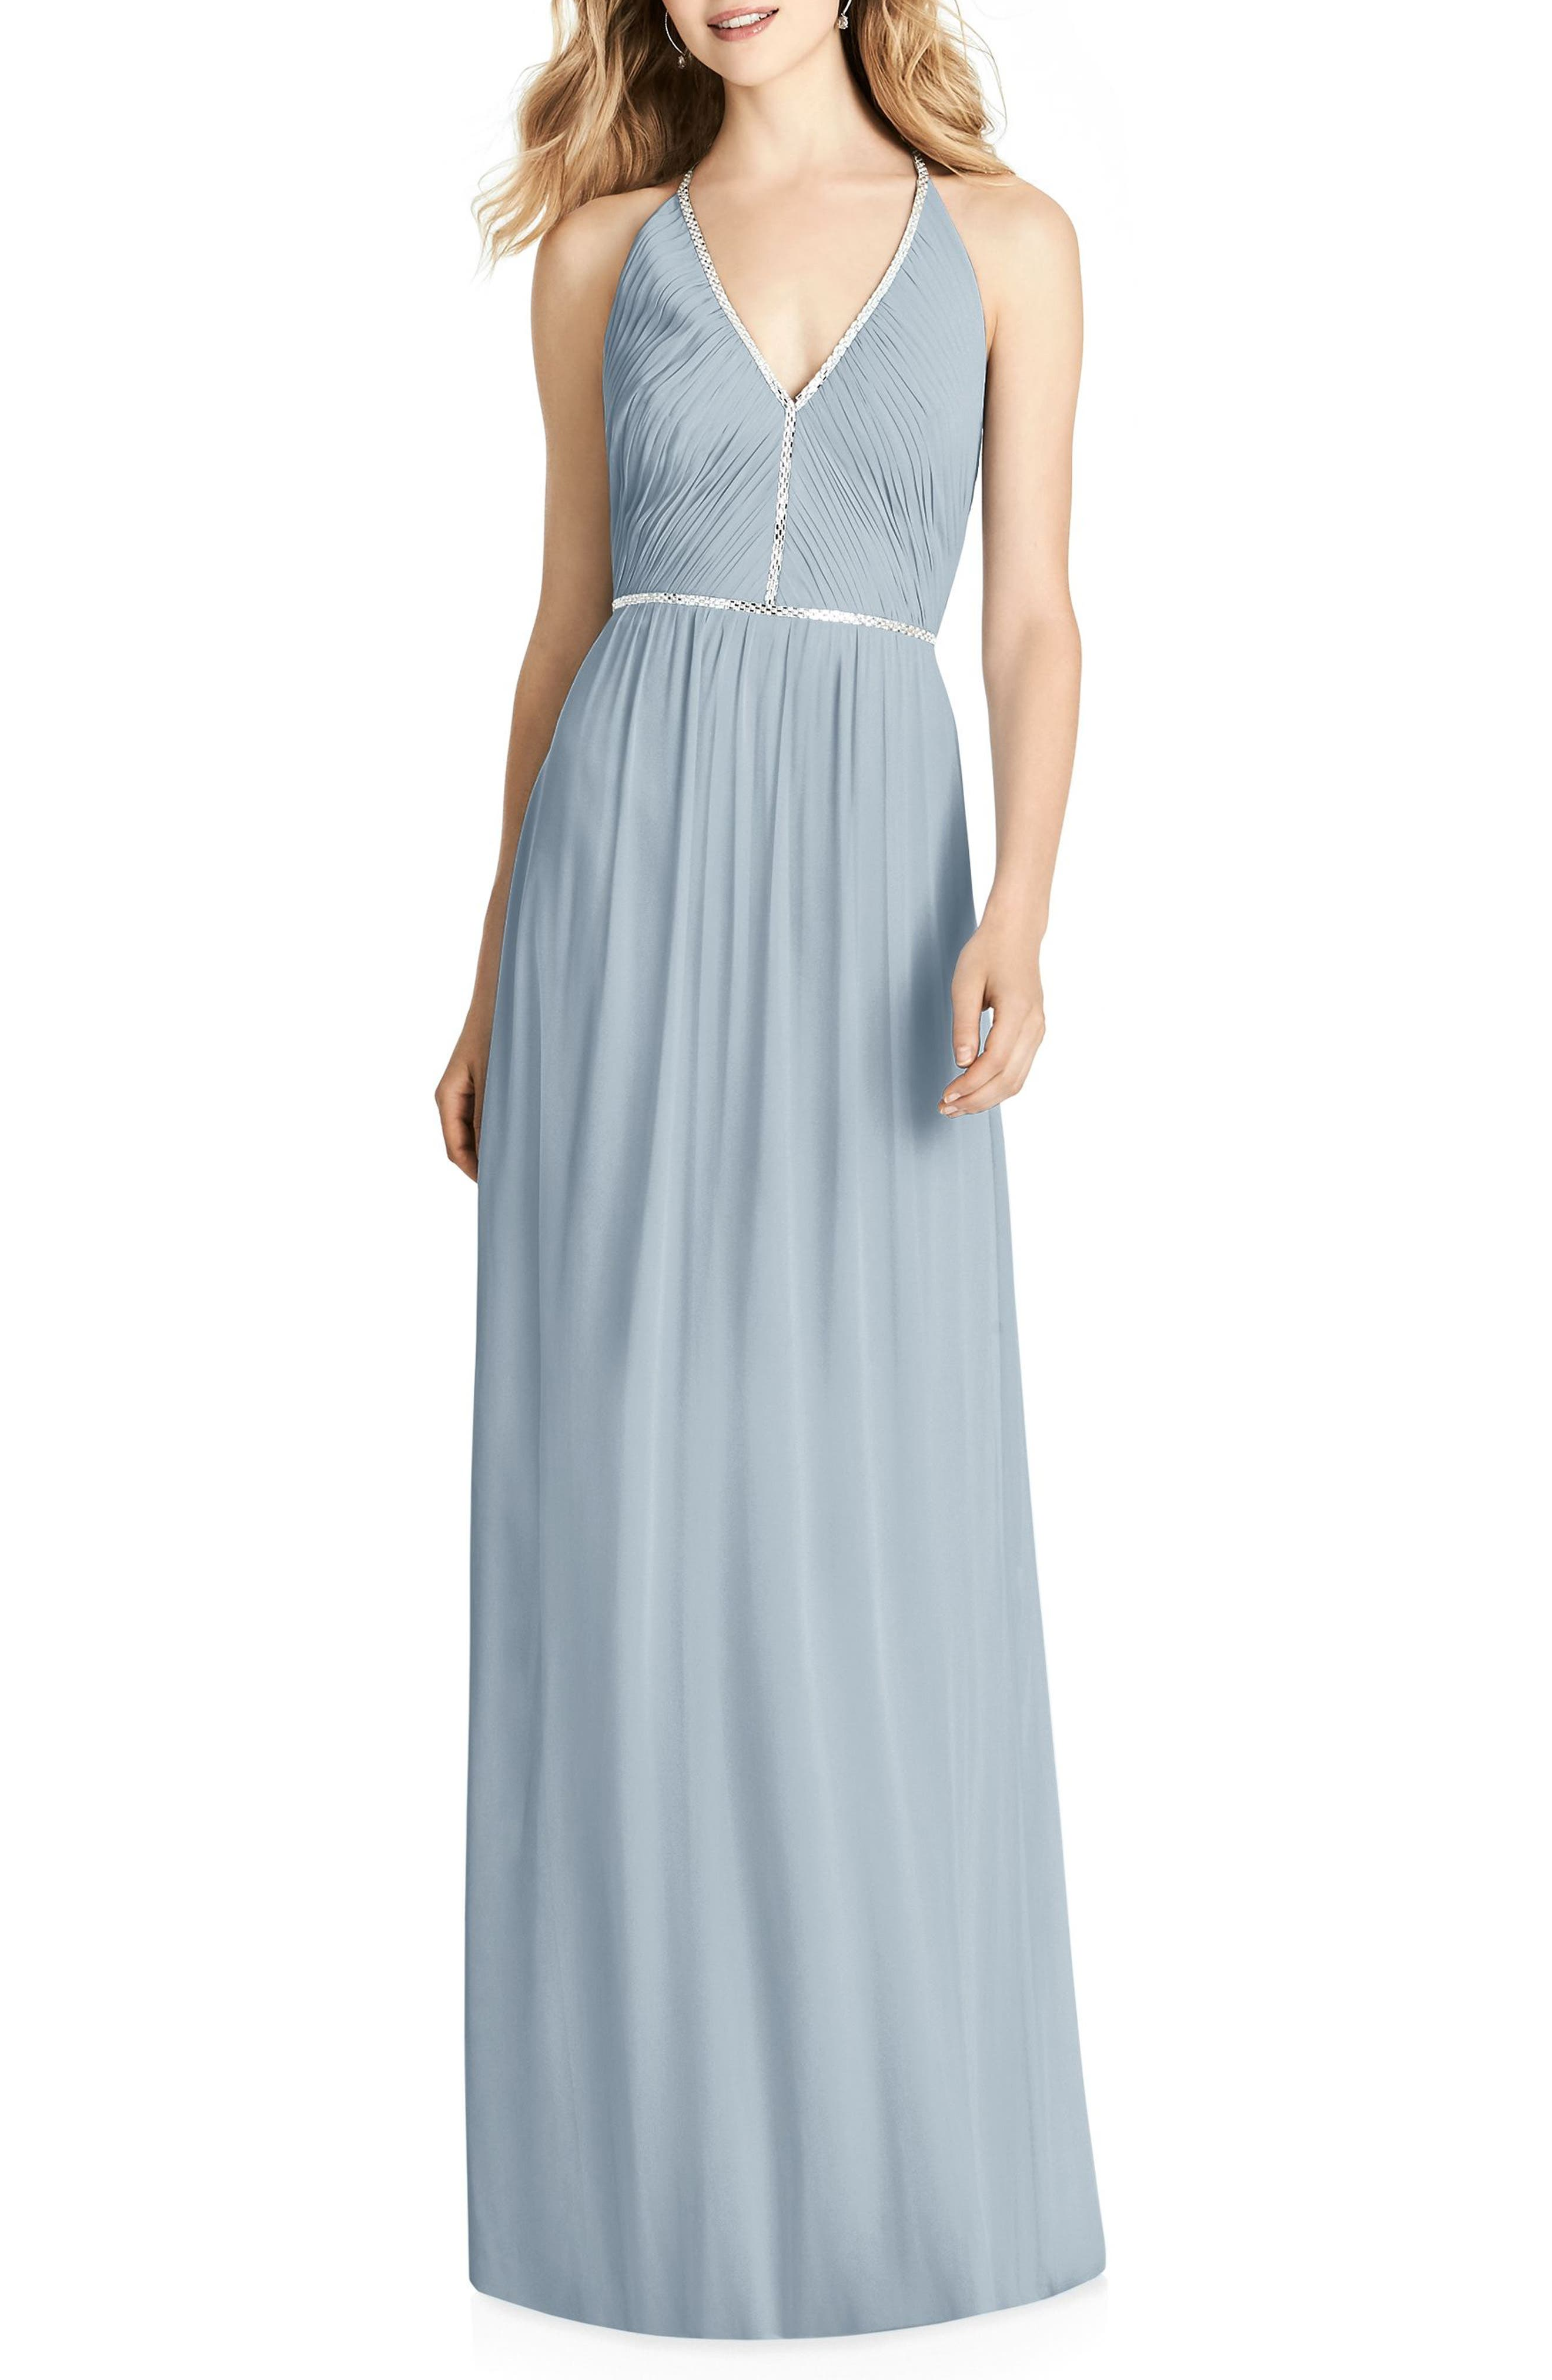 Alternate Image 1 Selected - Jenny Packham Pleated Bodice Chiffon Gown